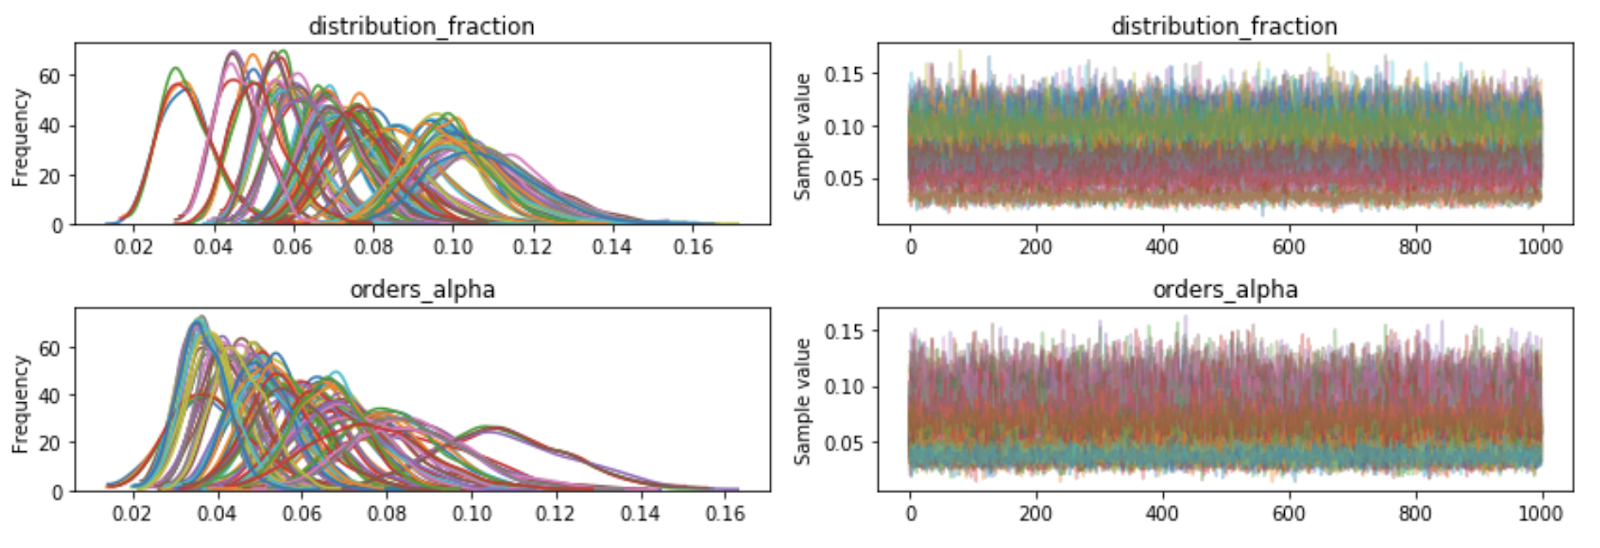 Fixed-point method for validating the first-order approachability